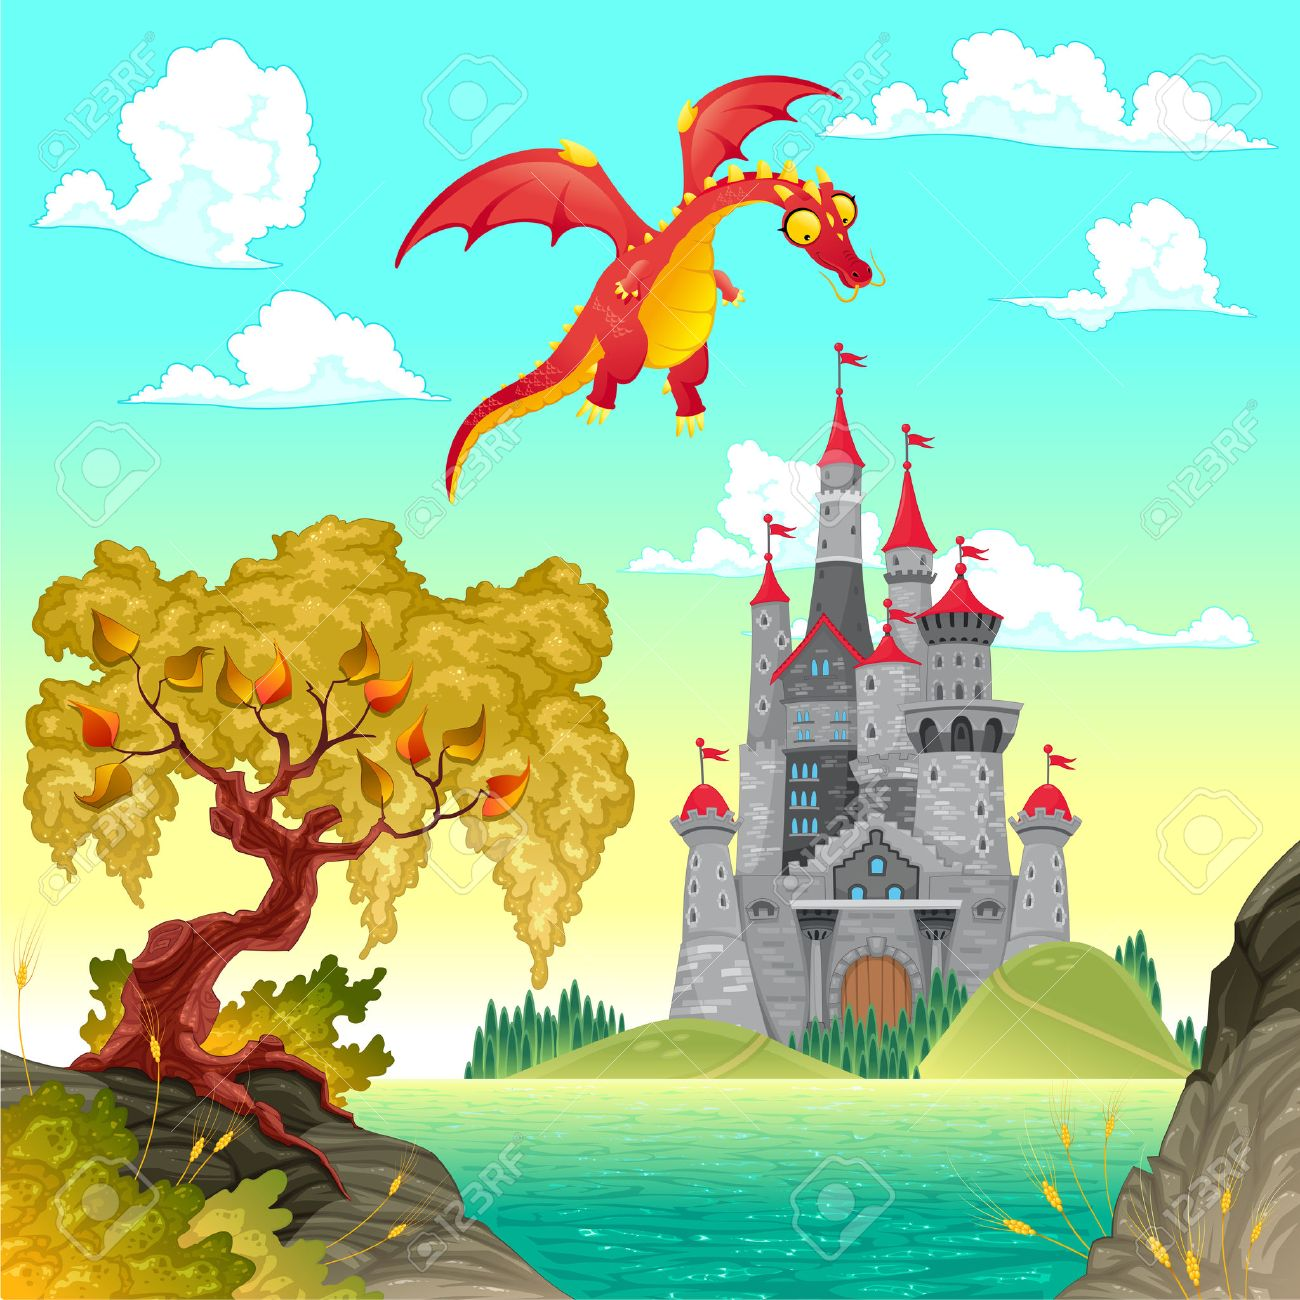 Fantasy landscape with castle and dragon. Vector illustration. Stock Vector - 23039748